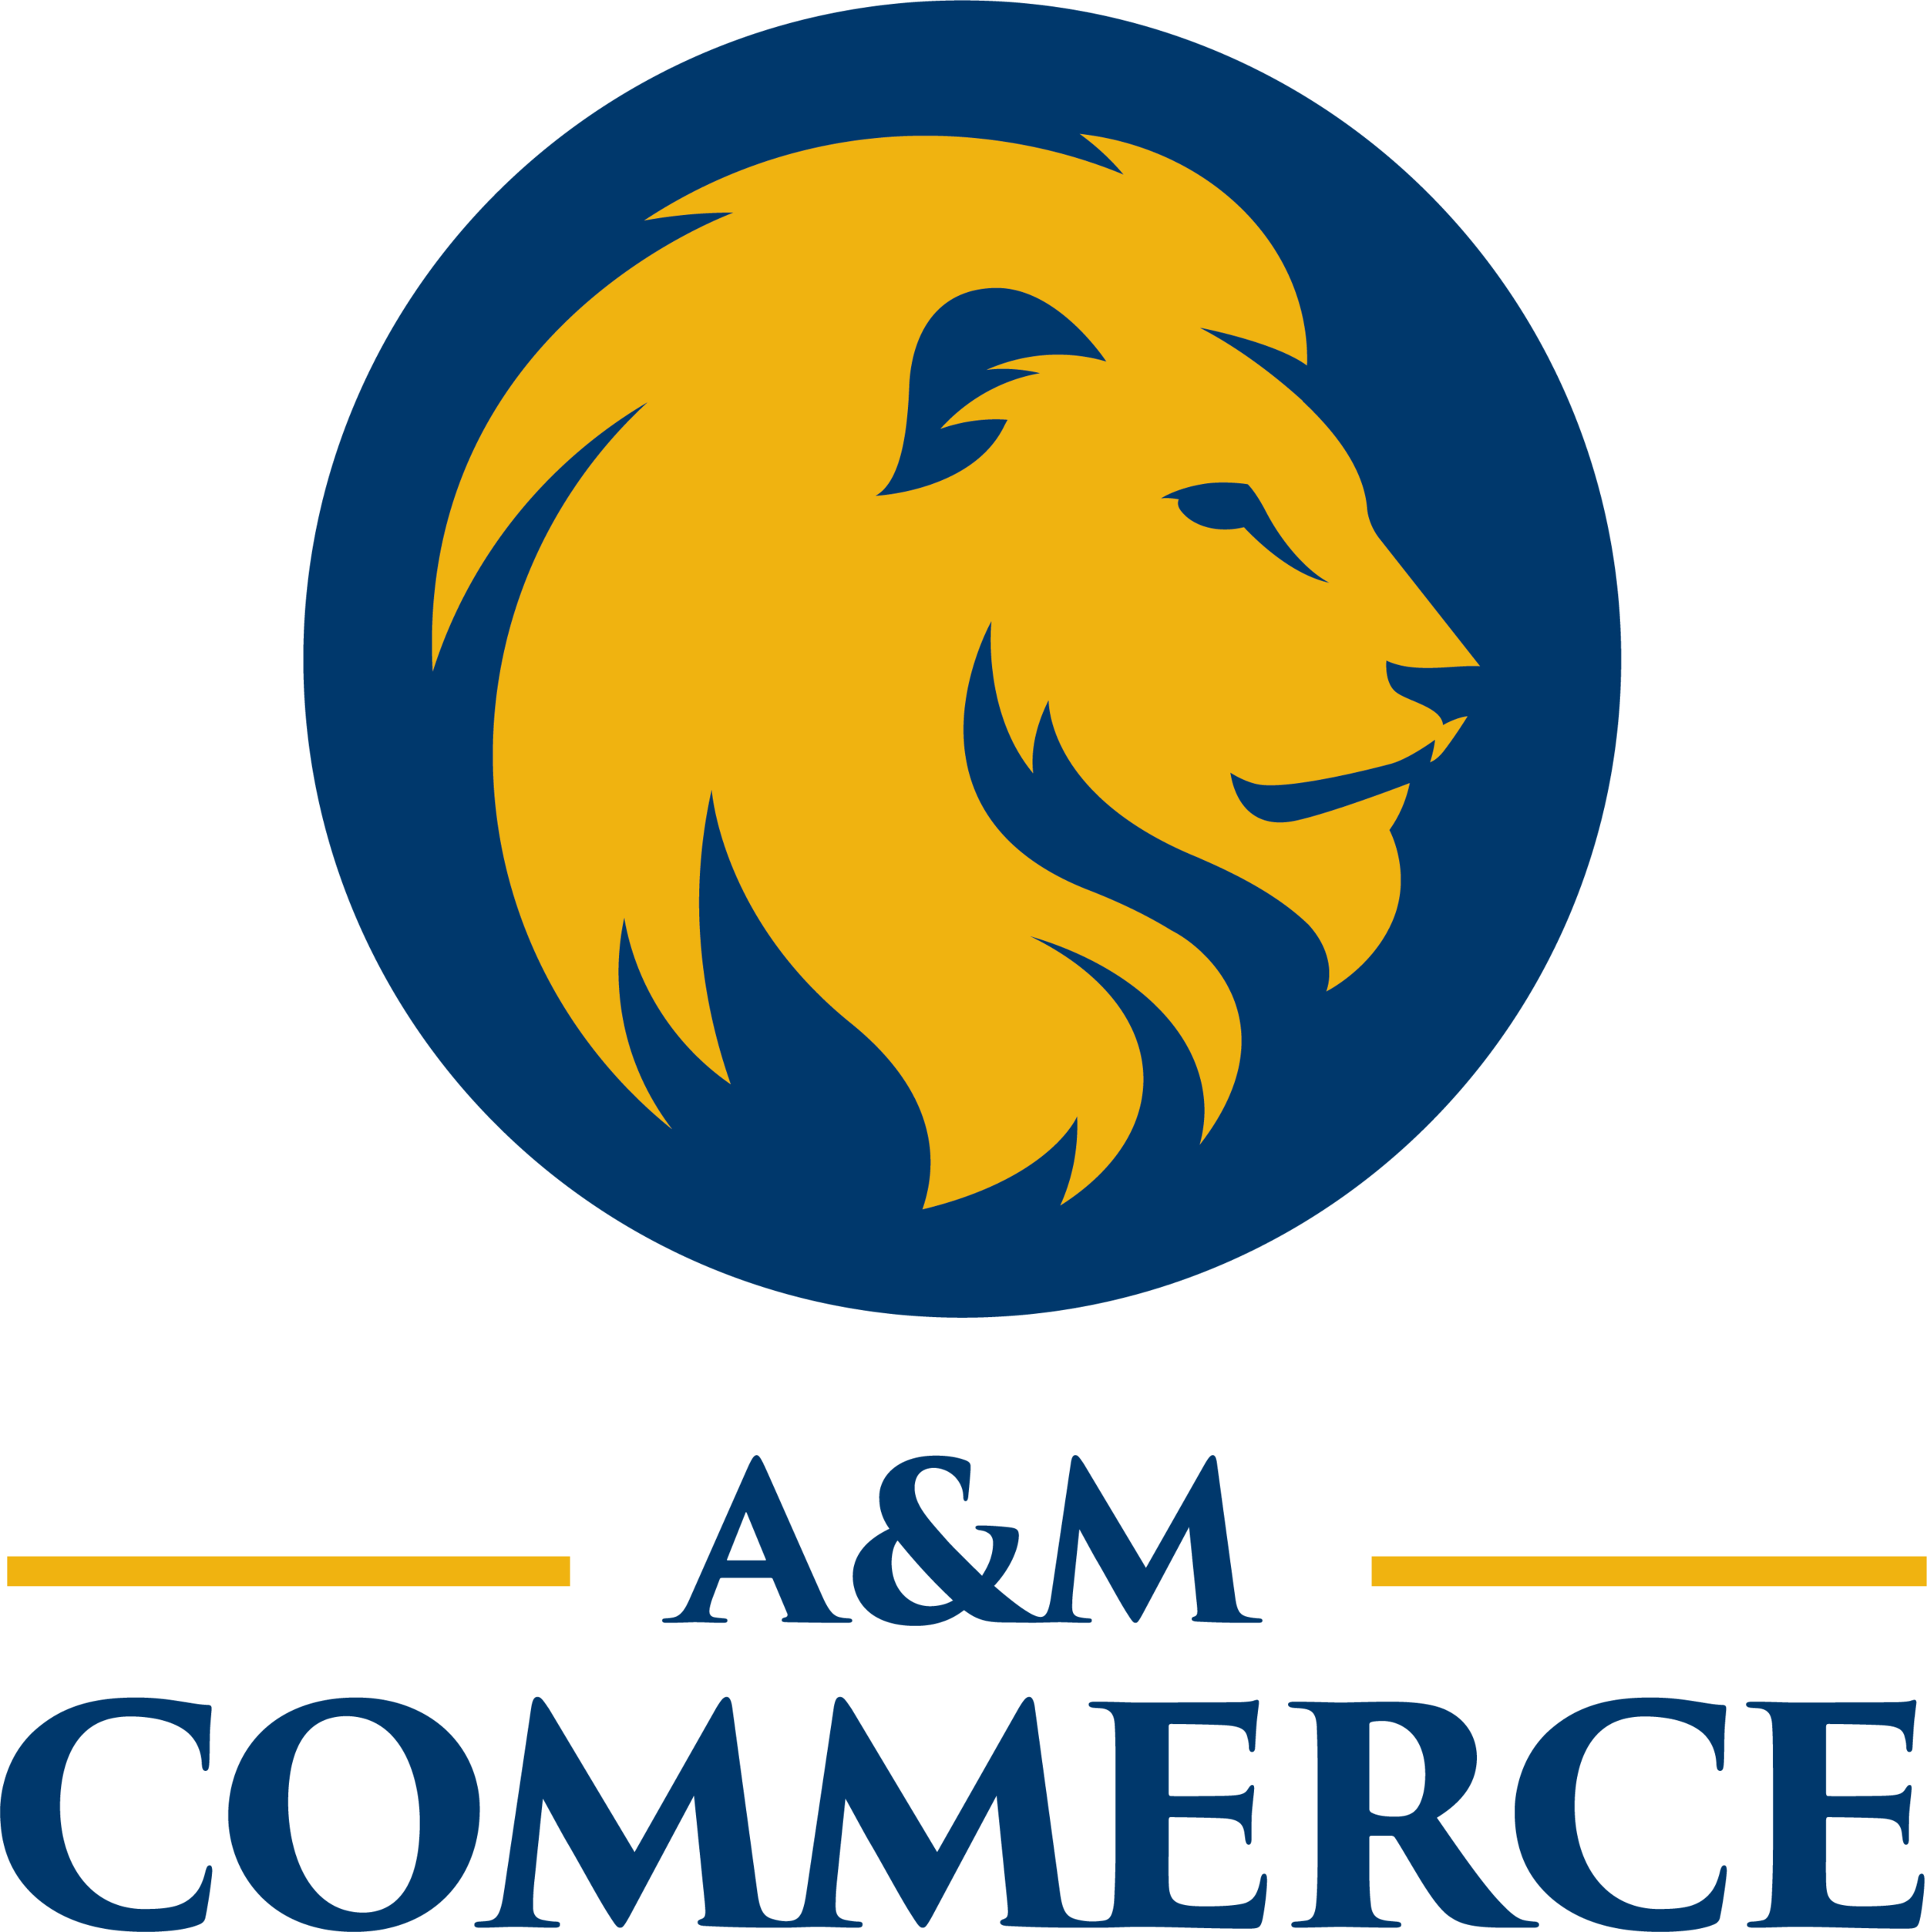 AM-Commerce-Vertical-Two Color-Digital.png